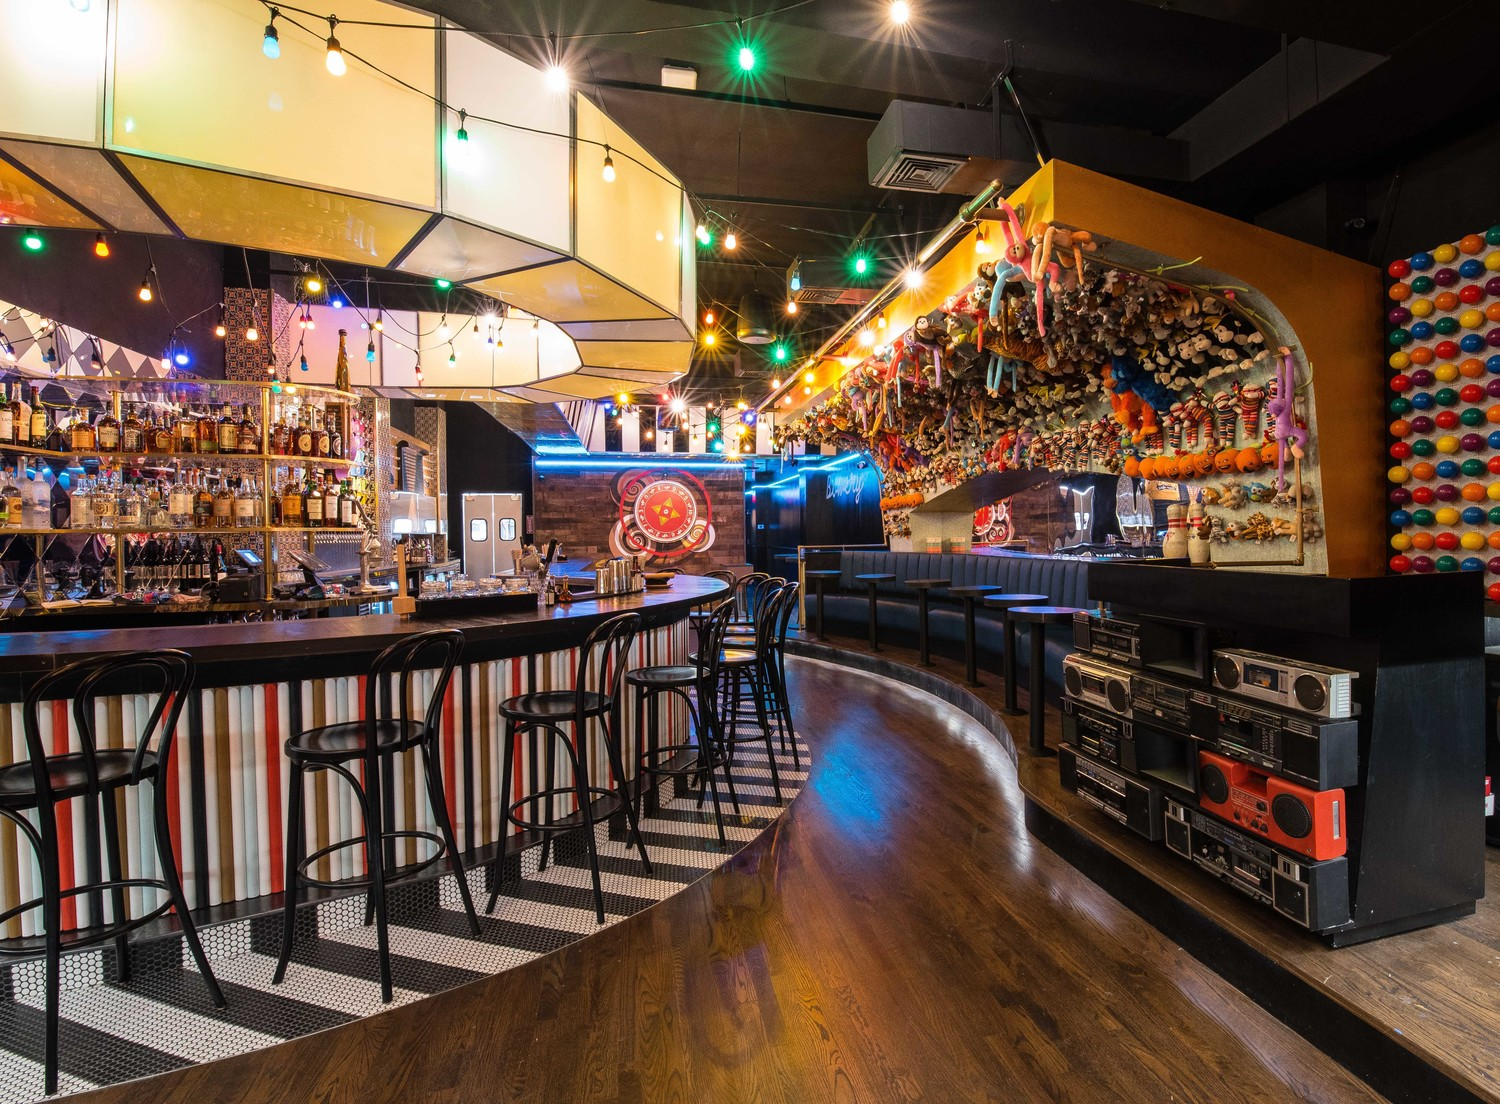 The carnival-themed Bowery Bar & Fare is opening July 9 at 300 Sunrise Highway.